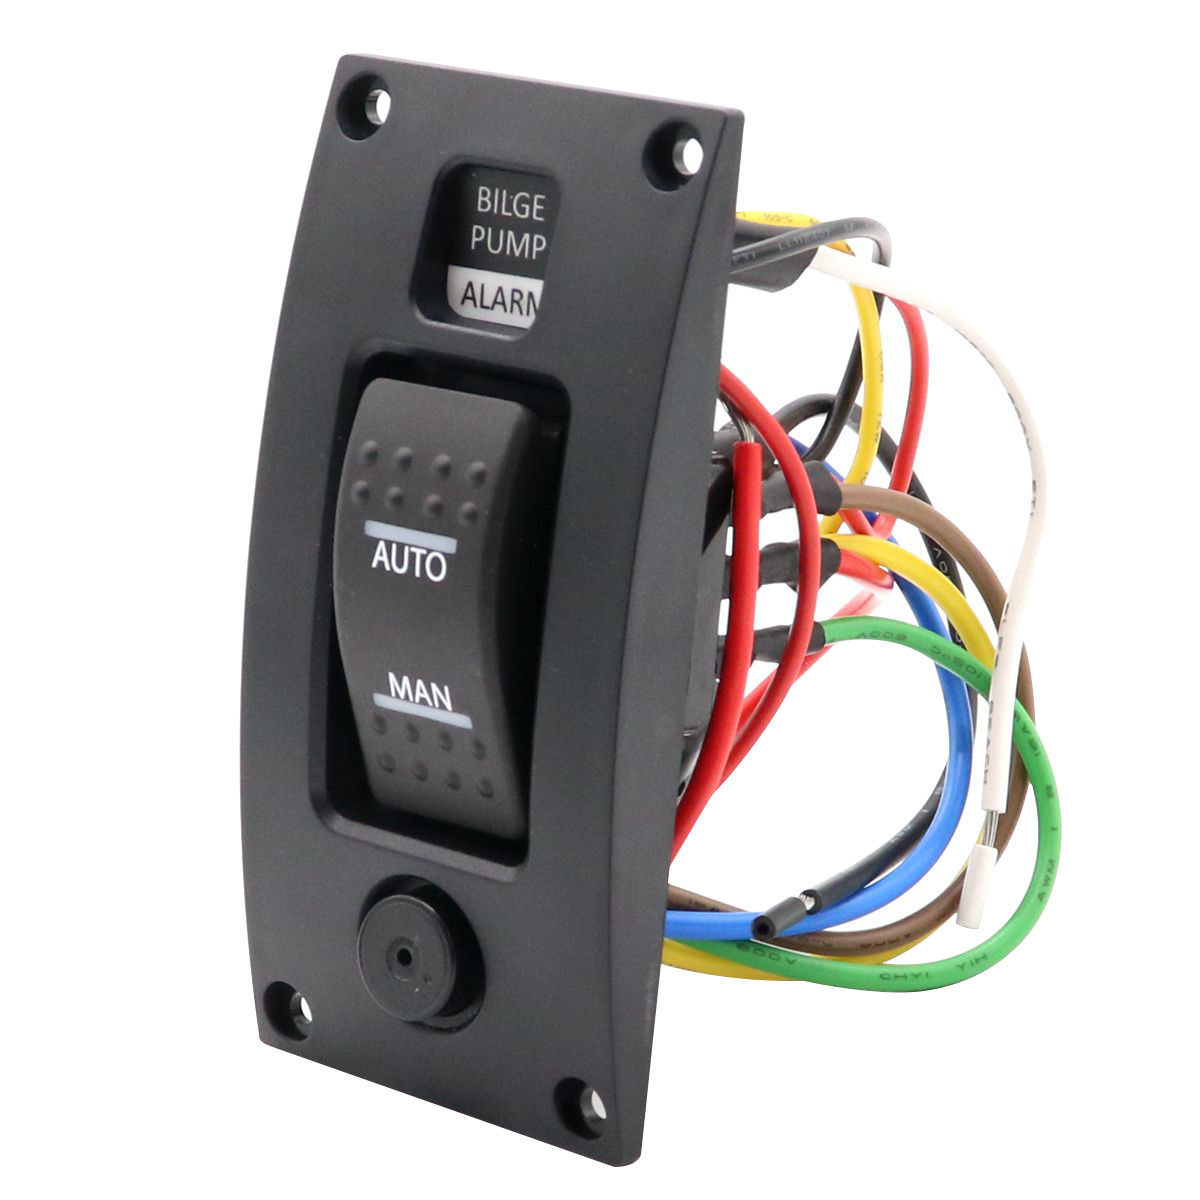 3-way Bilge Pump Switch Panel Automatic-off-manual 12v W/ Alarm For Boat Rv Boxed